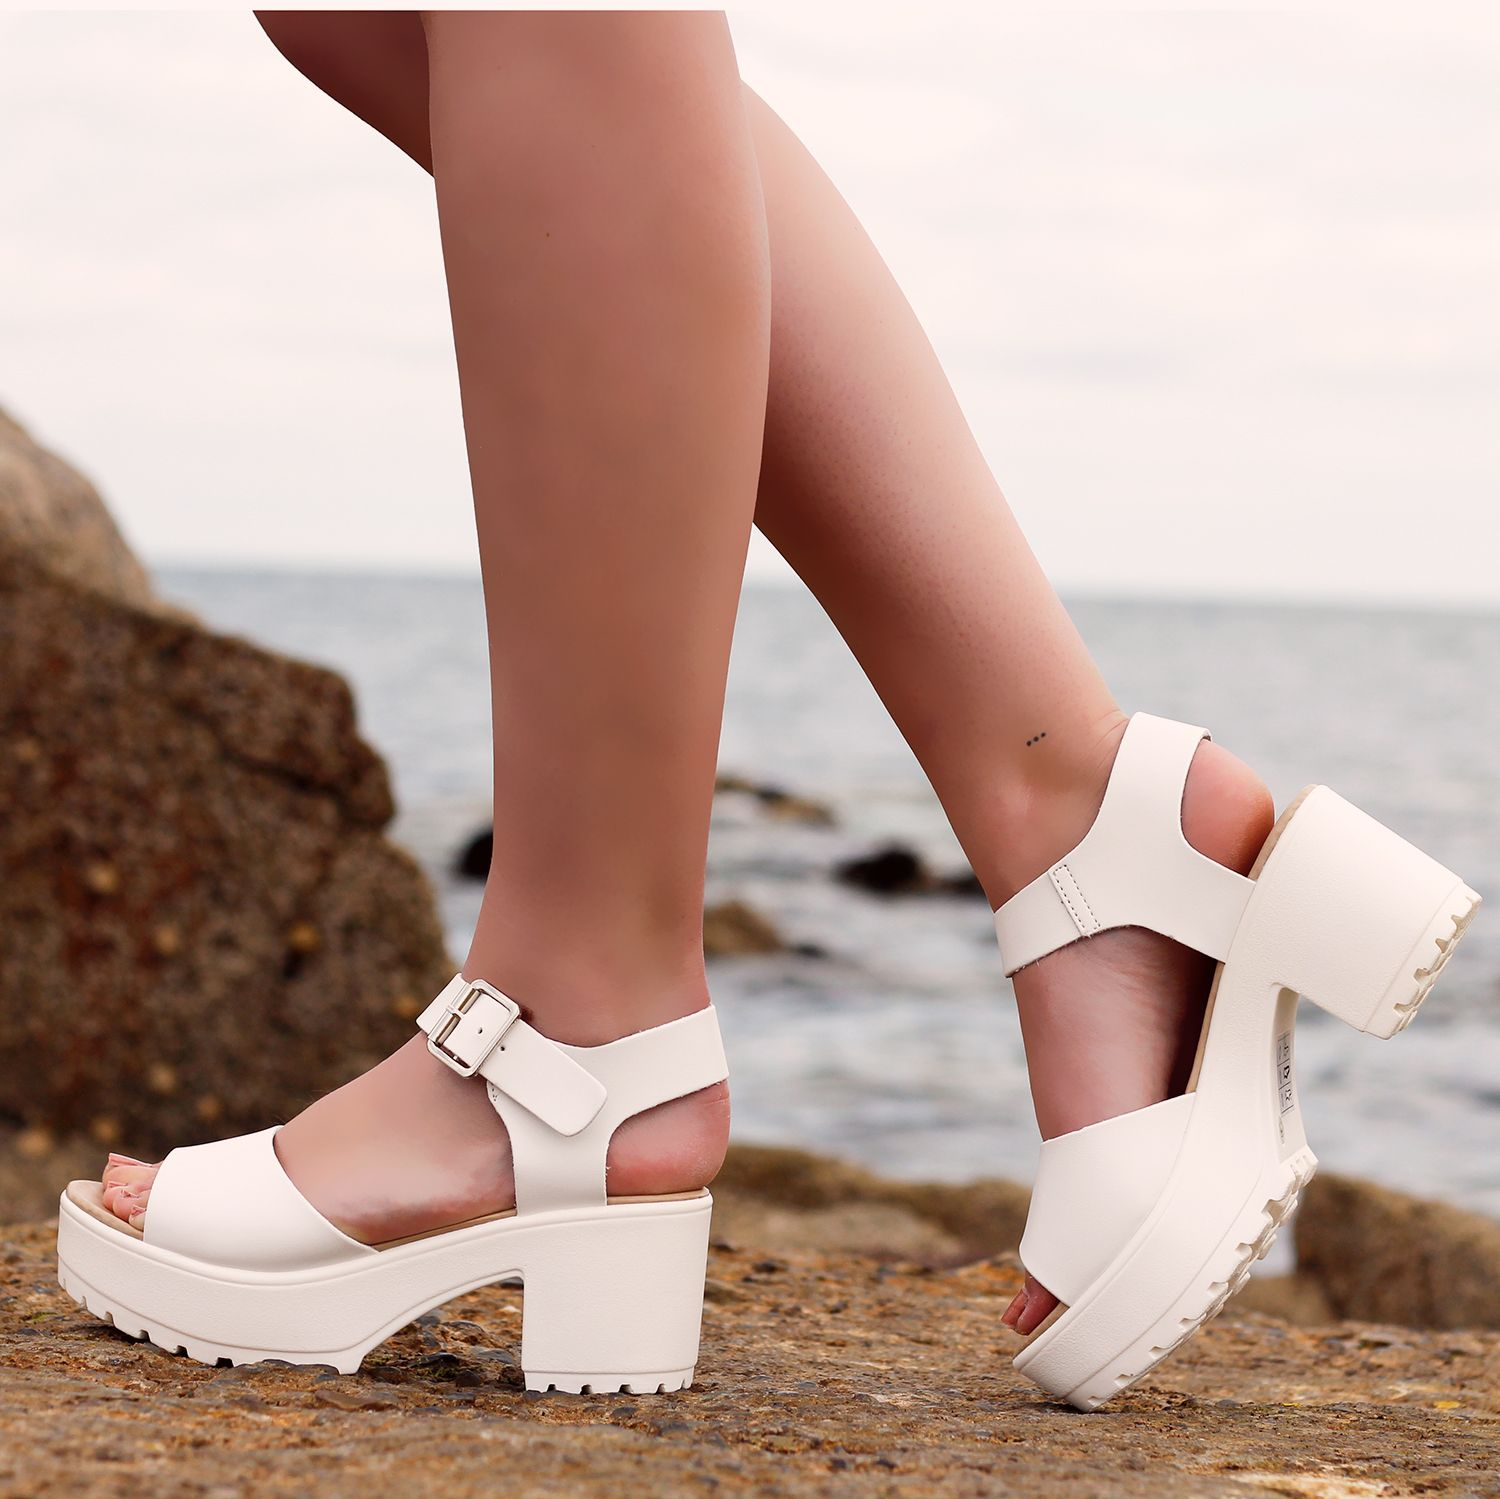 d6ae369b424d Killing it in white sandals this summer  korkys  korkys shoes  korkysshoes   fashion